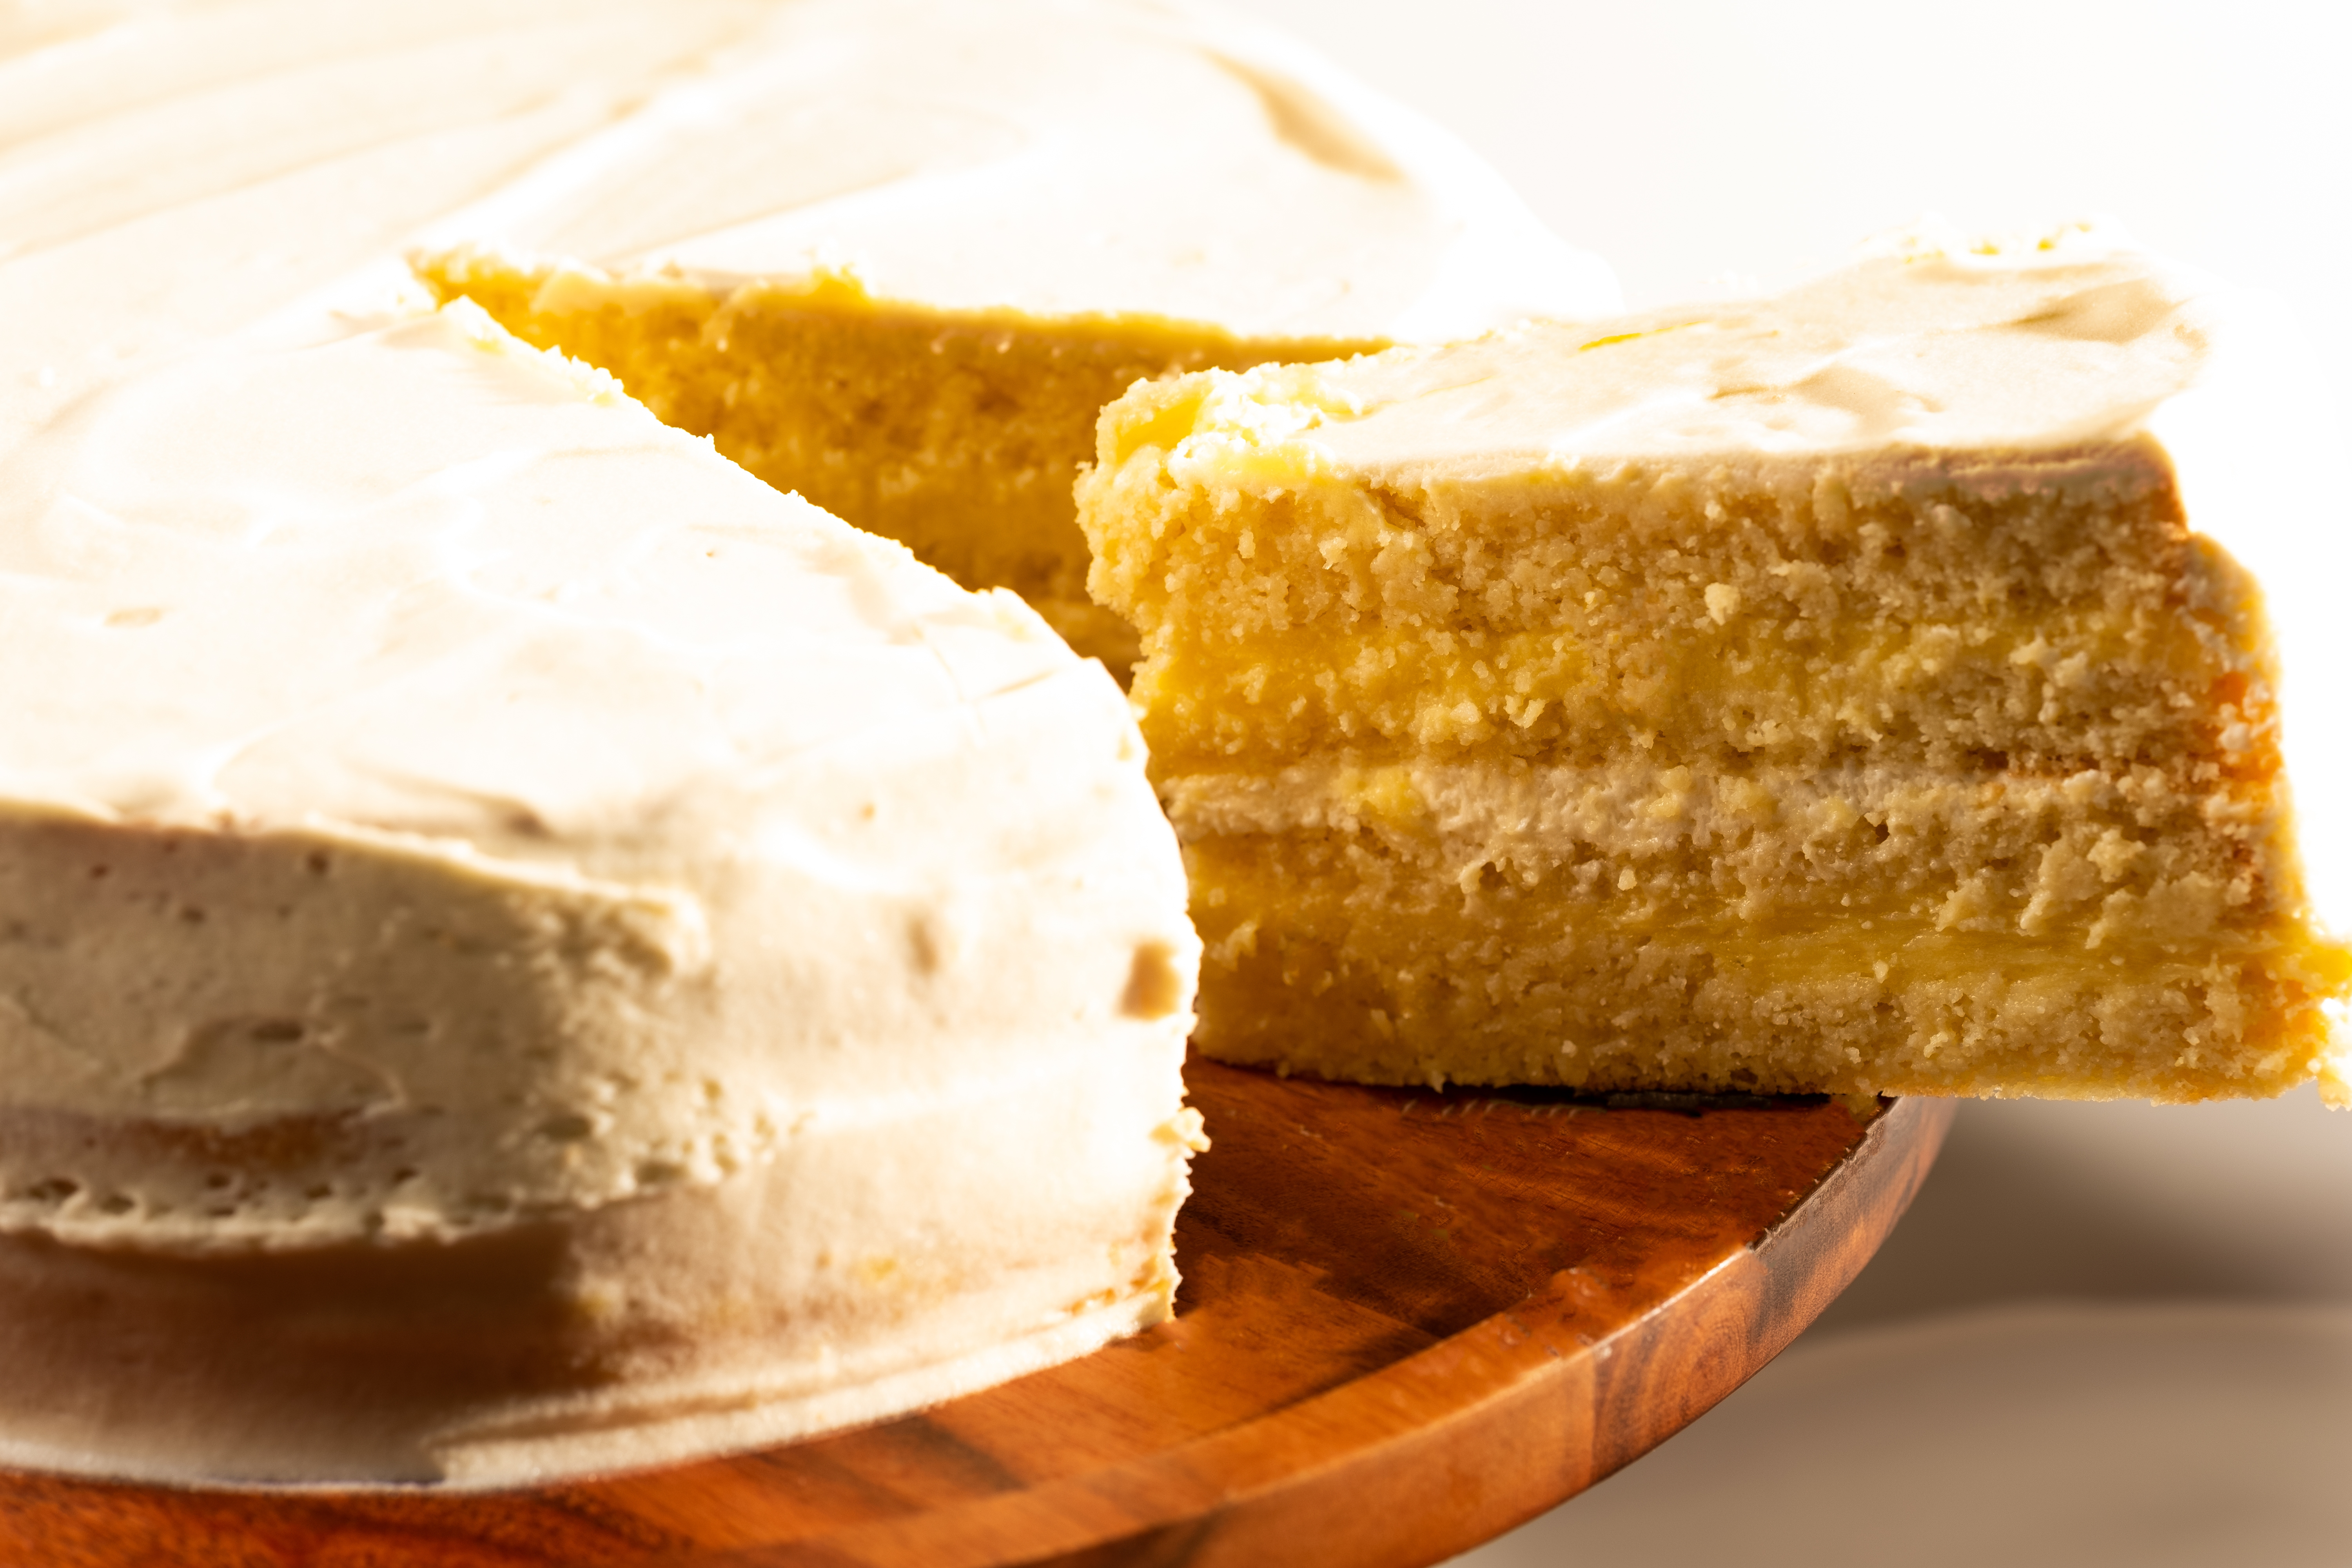 Lemon Cake 874 Edit